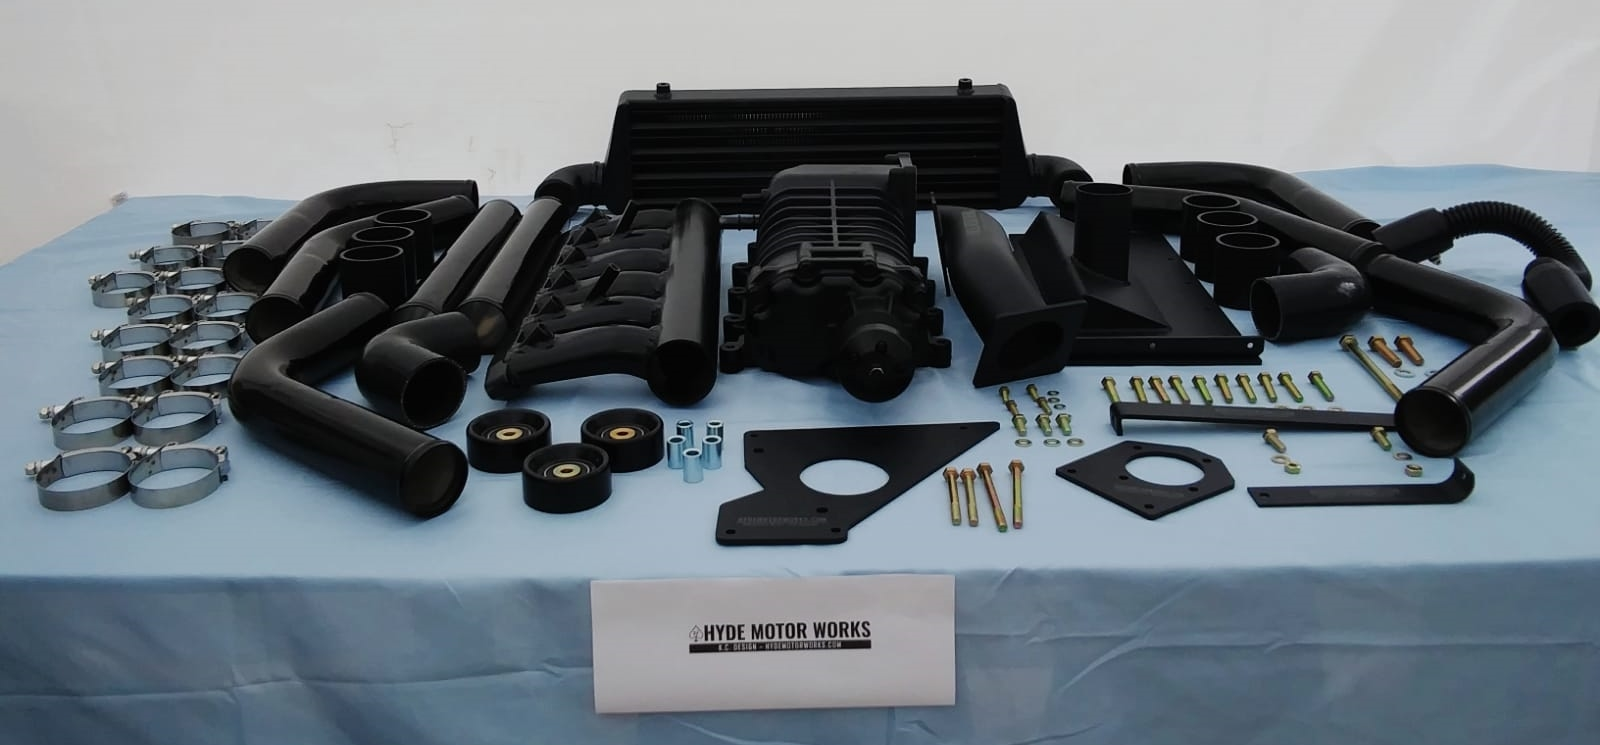 You are currently viewing M122H Rev 1 officially available &  M4x SC kit under development